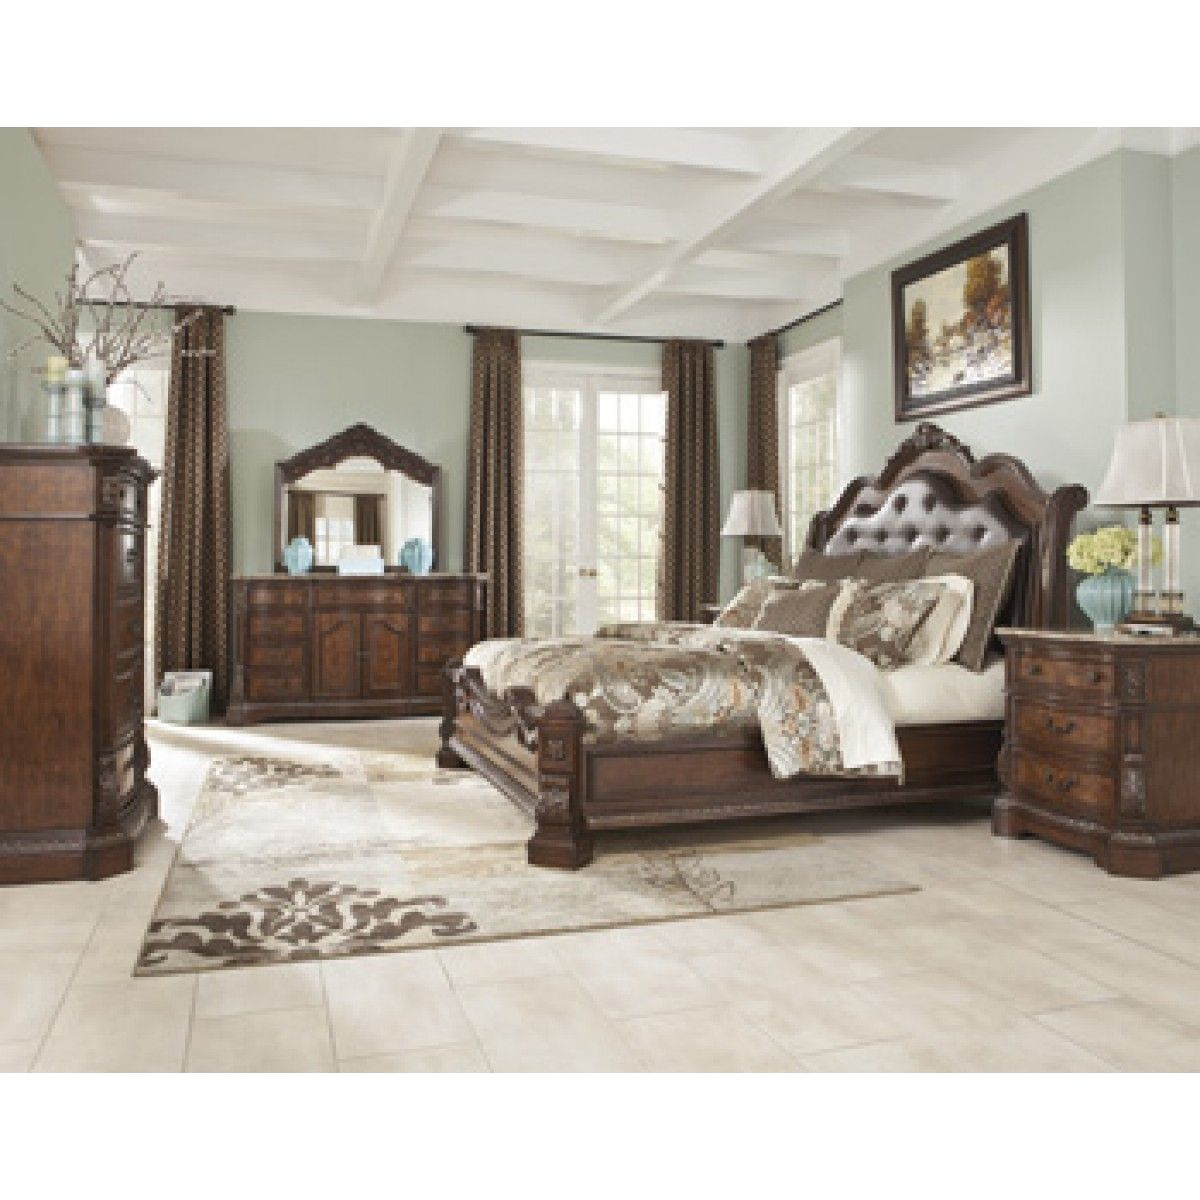 Ashley+Furniture+Bedroom+Furniture | ... BY MANUFACTURER ASHLEY ...